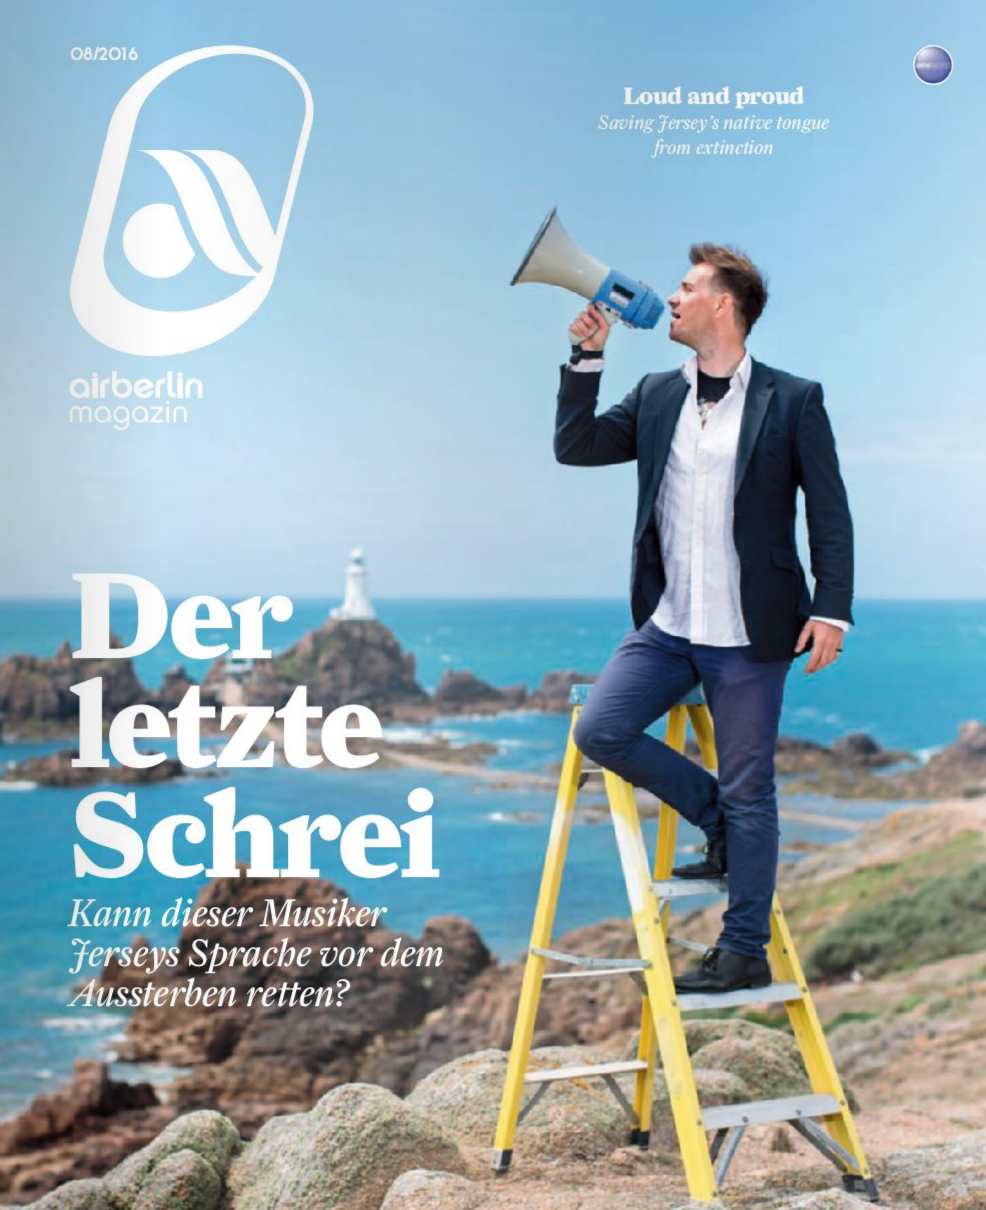 Airberlin Magazin,  August 2016   Translation